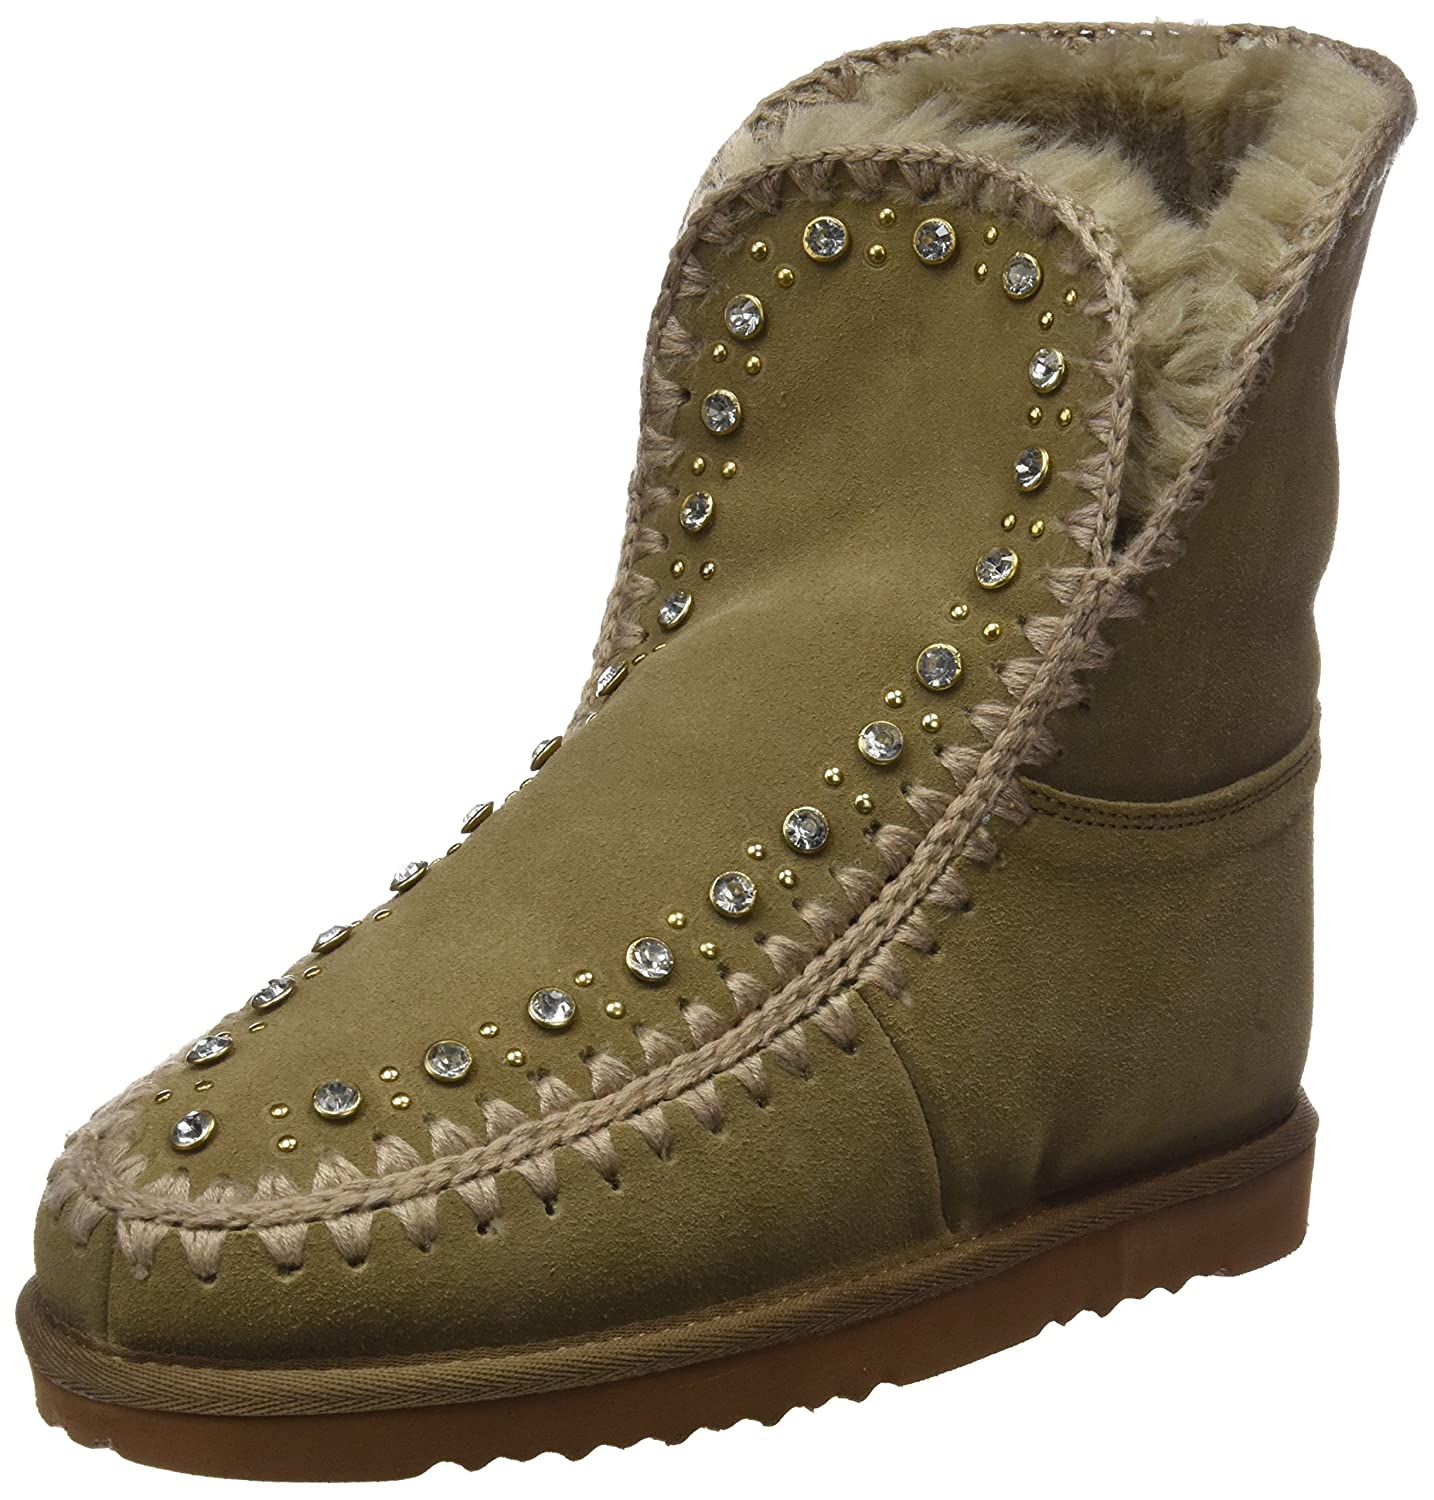 Noa Harmon 7210-28, Botas Slouch para Mujer Beige (Taupe)